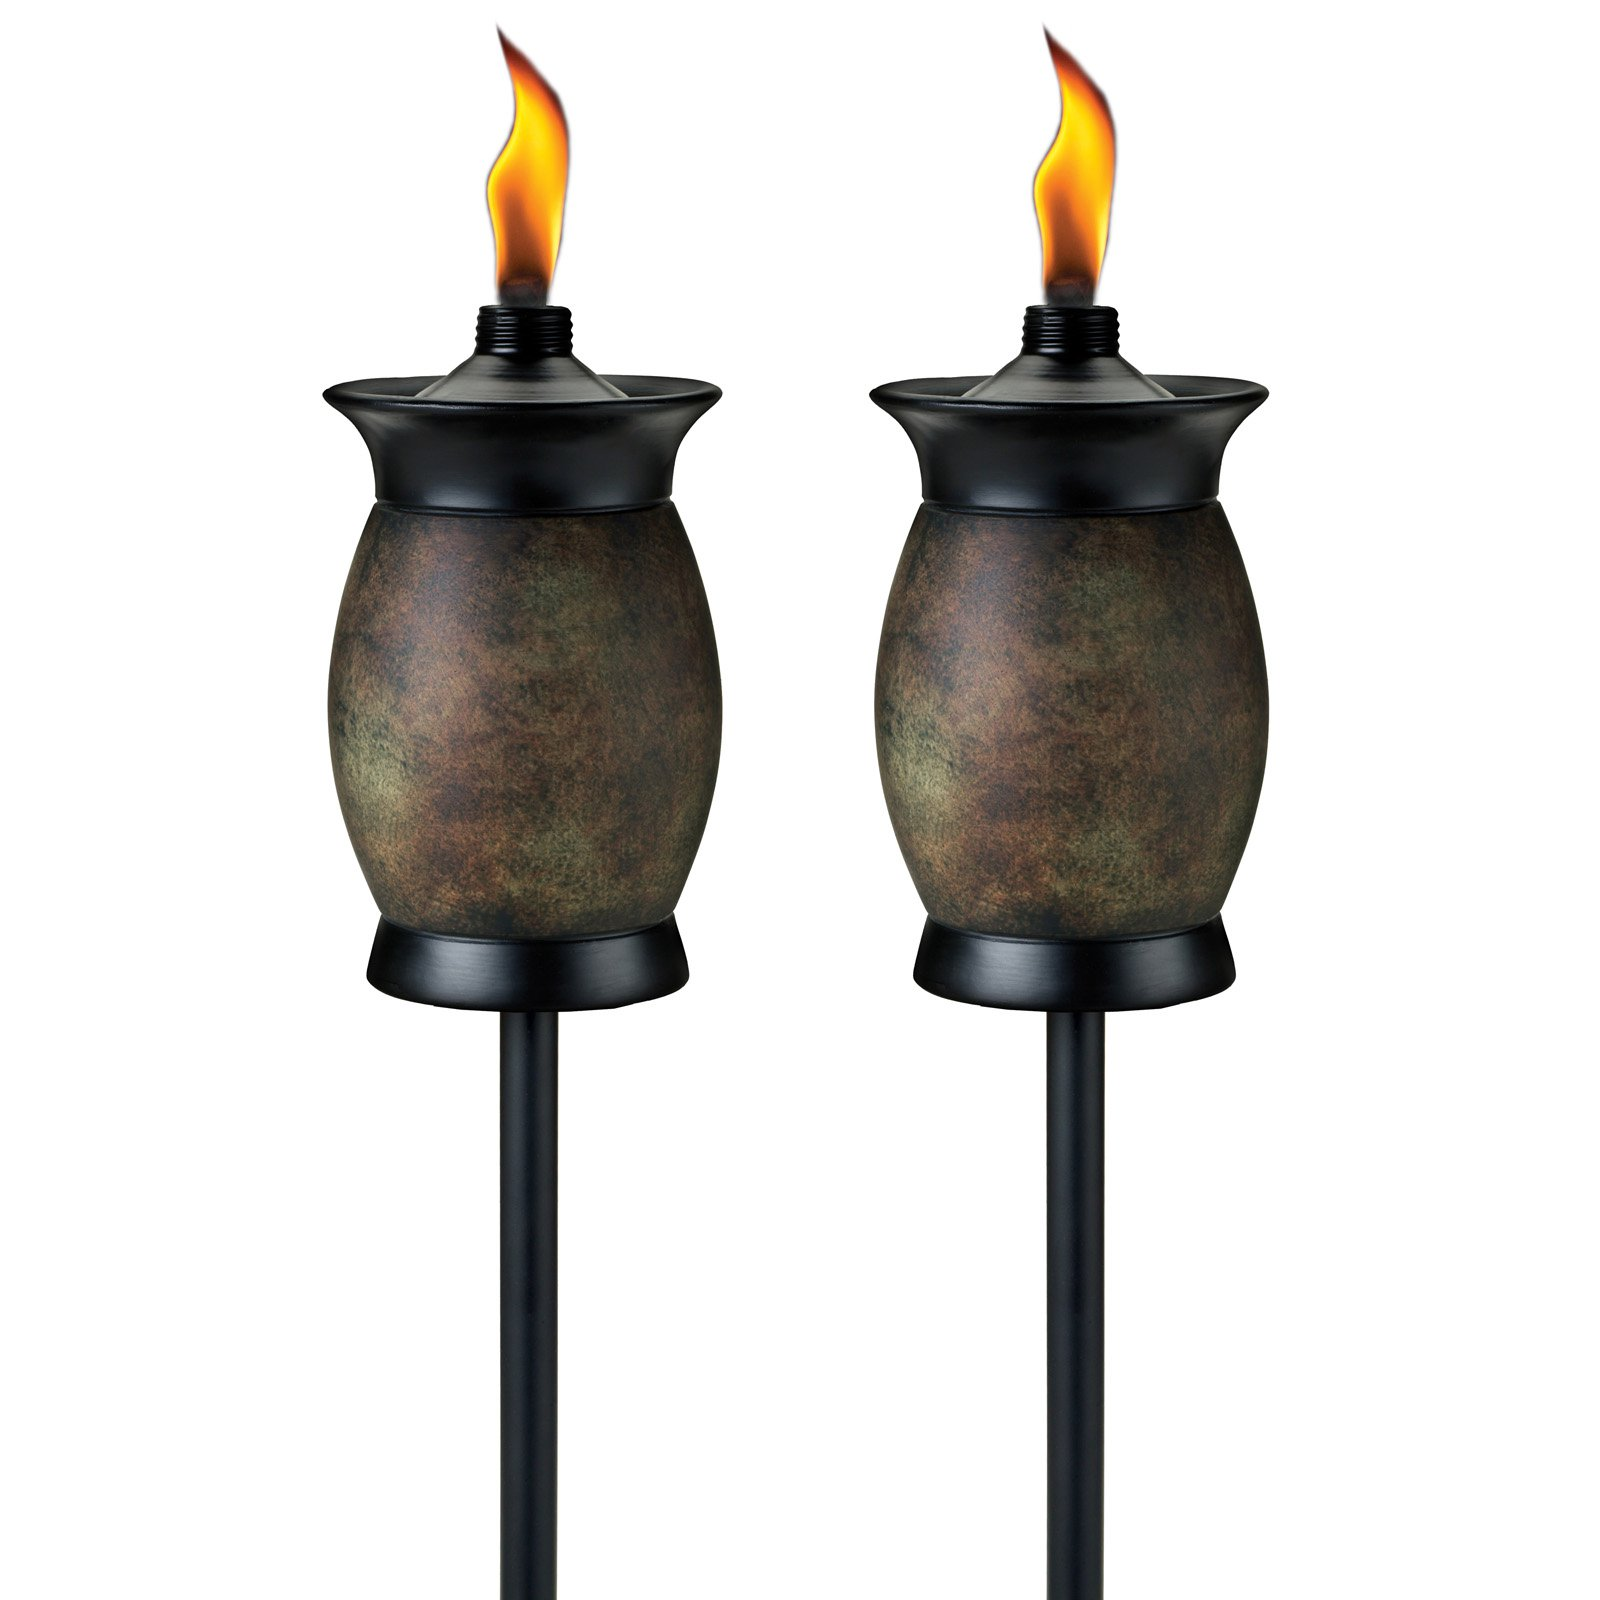 Tiki 4-in-1 Resin Jar 64 in. Outdoor Torch